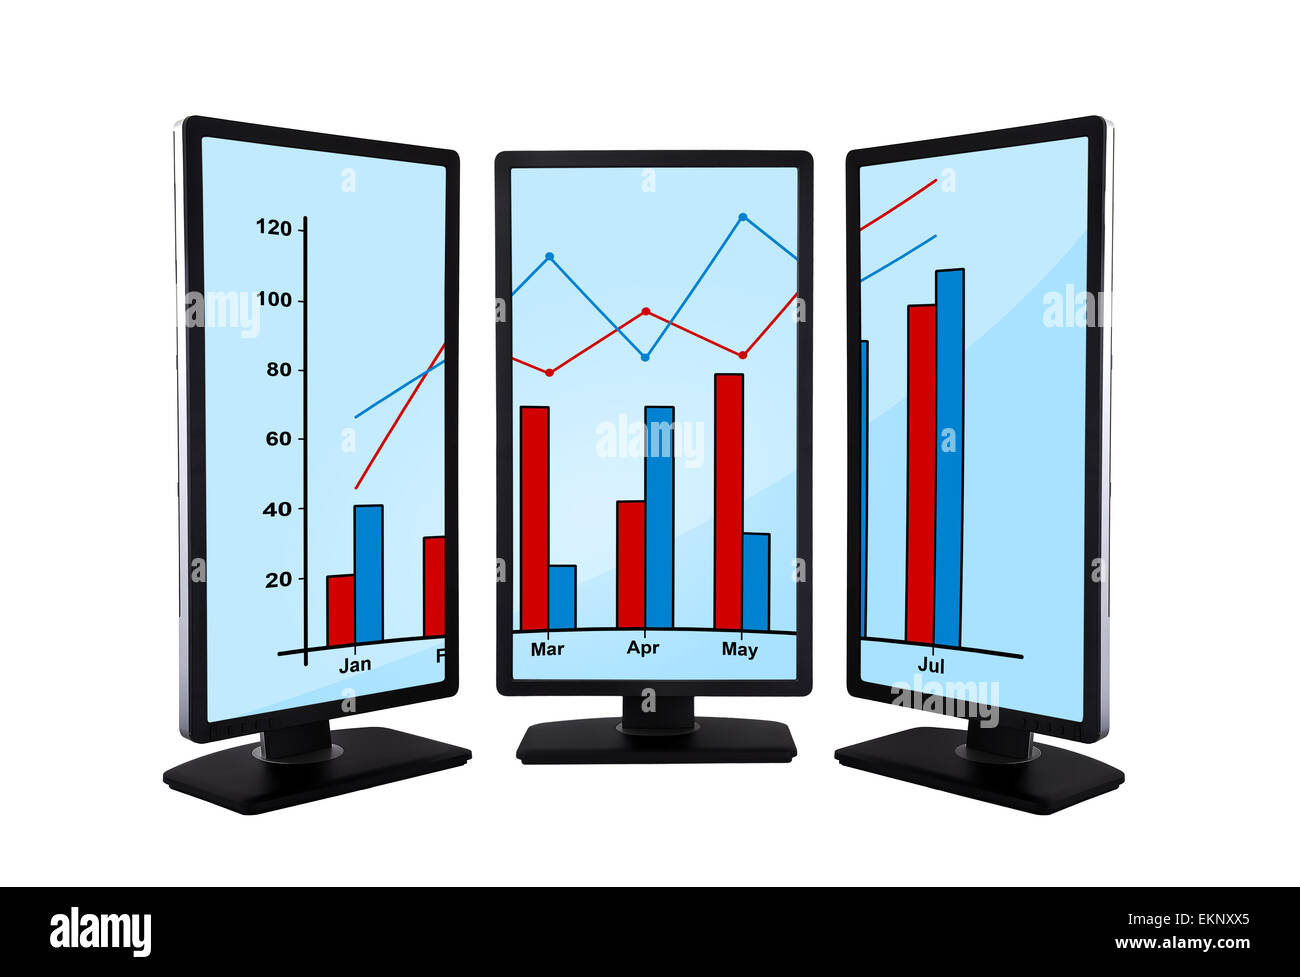 panels with graphic - Stock Image